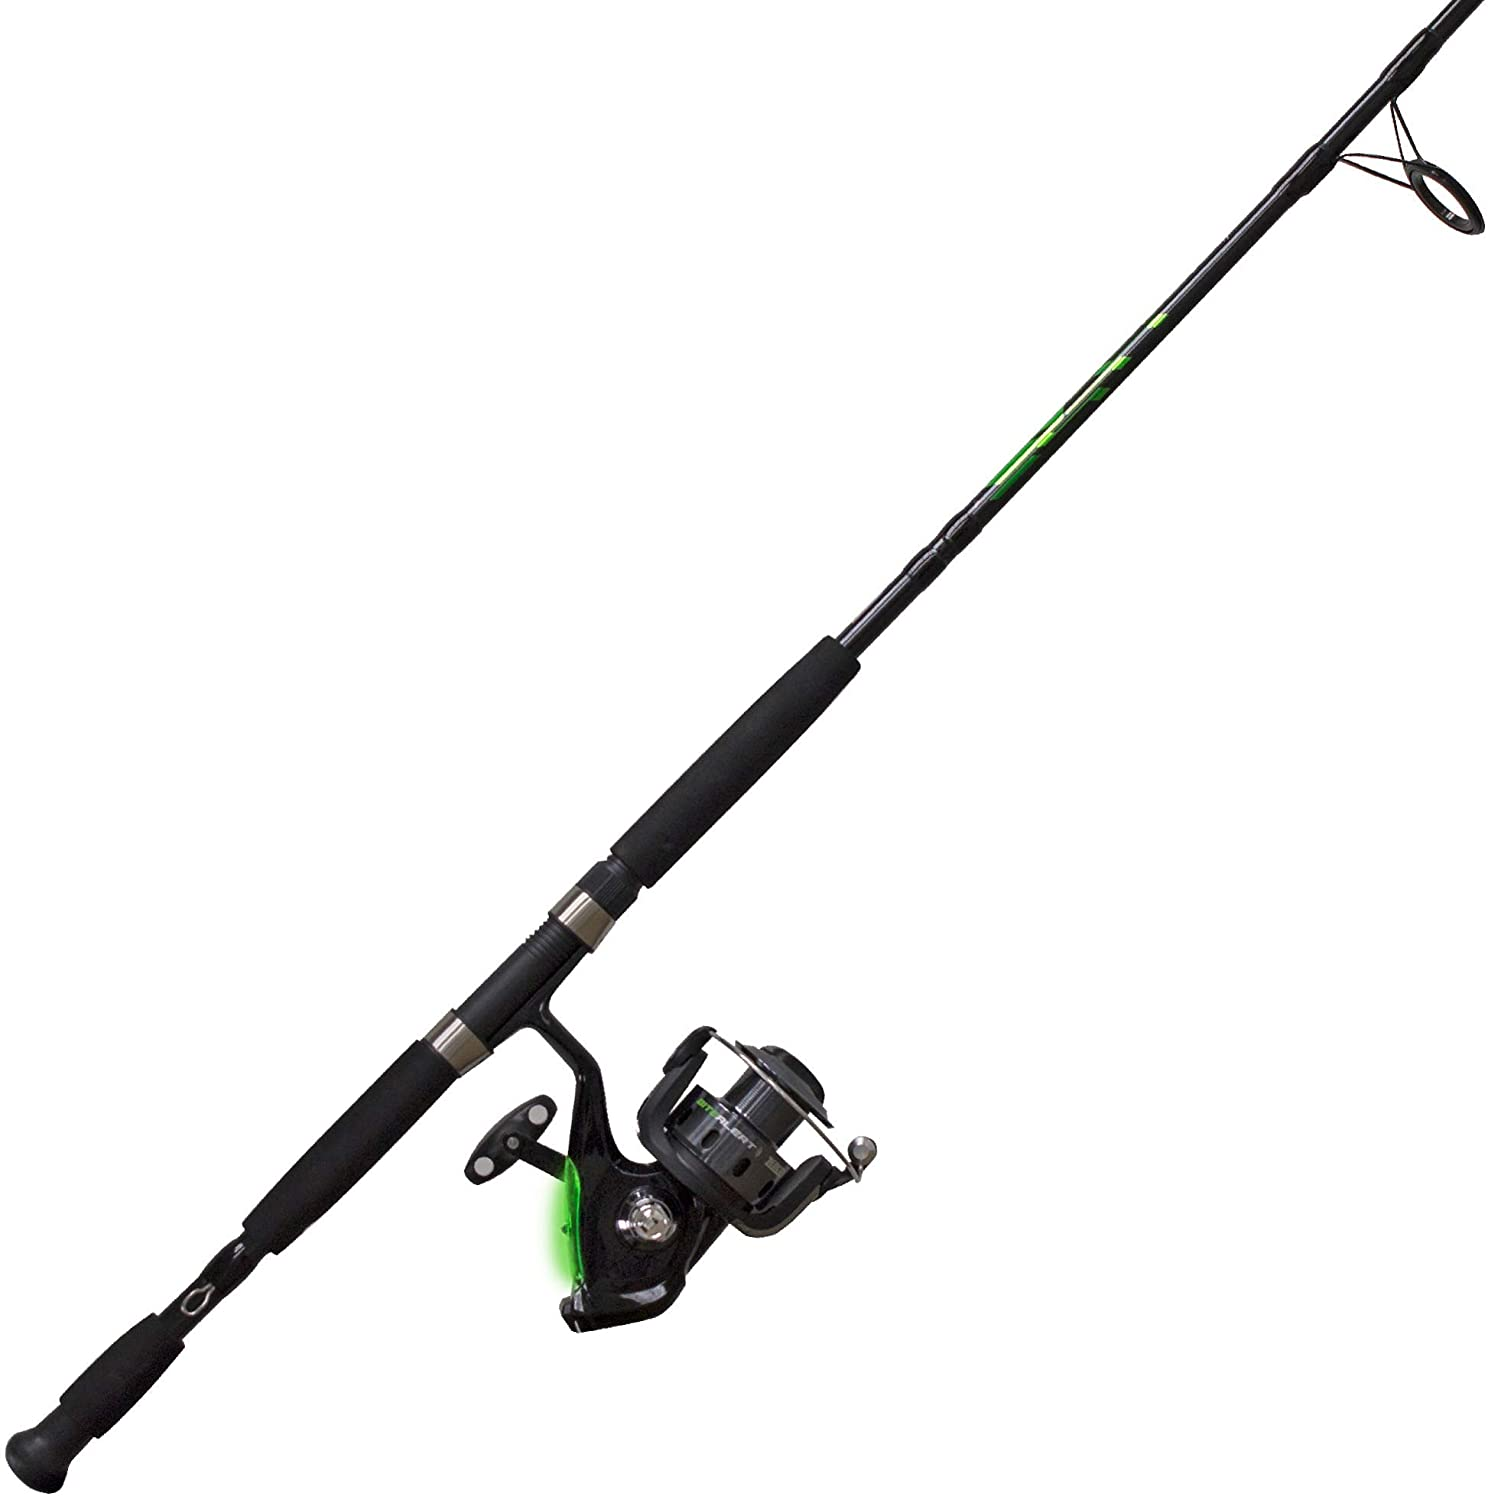 6 | Quantum Fishing Zebco Bite Alert Spinning Reel and 2-Piece Fishing Rod Combo